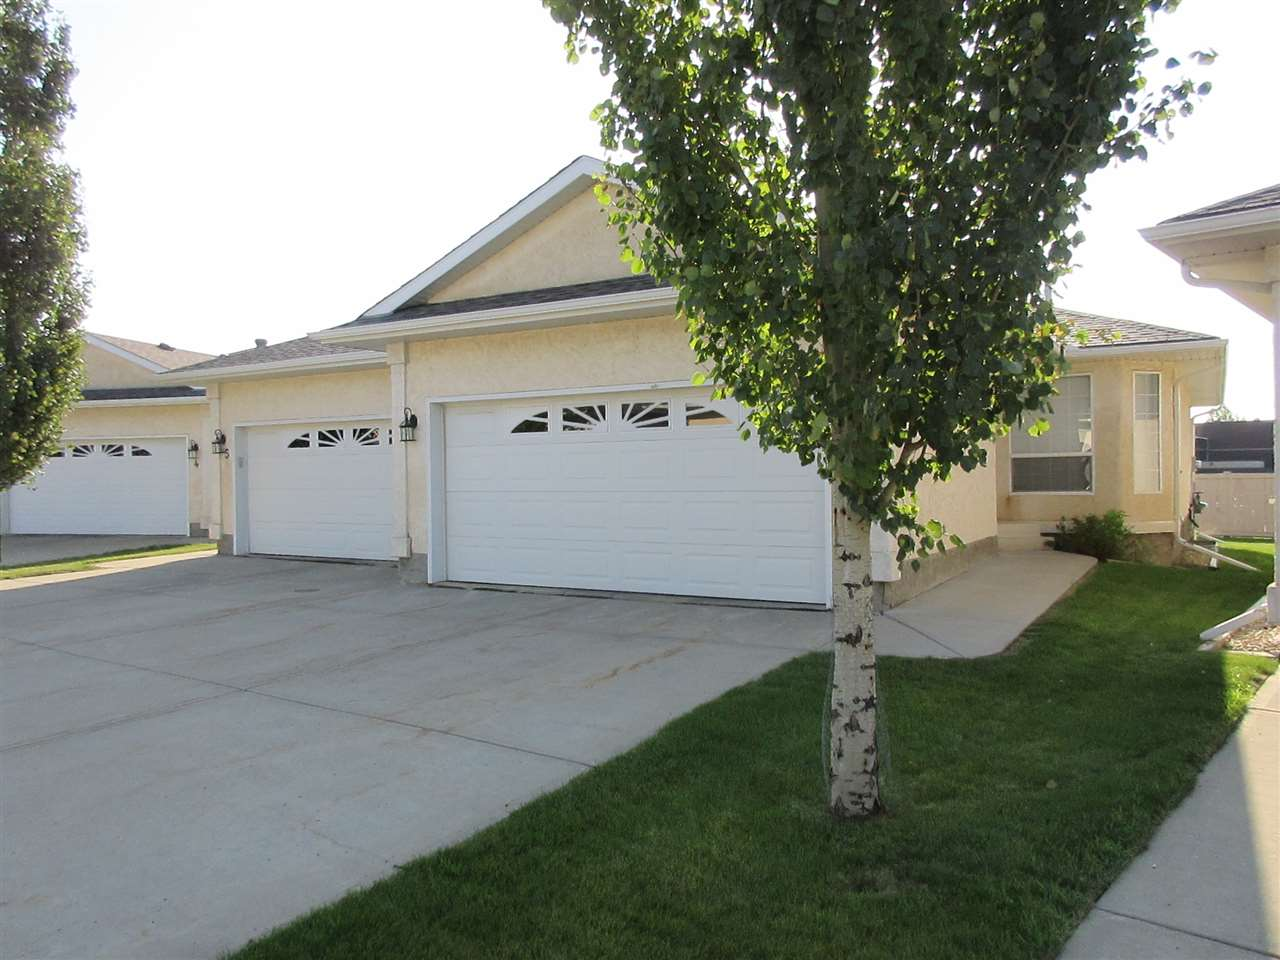 Immaculate - Adult - 45+ 1/2 Duplex - Miller Garden Estates - Double Attached Garage with Inside Entry and Main Floor Laundry. Large Kitchen open to Dining and Living Rooms. Master Bedroom features Walk-in-Closet and 3 Piece Ensuite. 2nd Bedroom and 4 piece Bath off Hallway. Garden Door to Deck off Living Room. Open Basement for Future Development. Shelving in Basement, Stair Climber and Ramp in Garage stay. Good location in Complex.